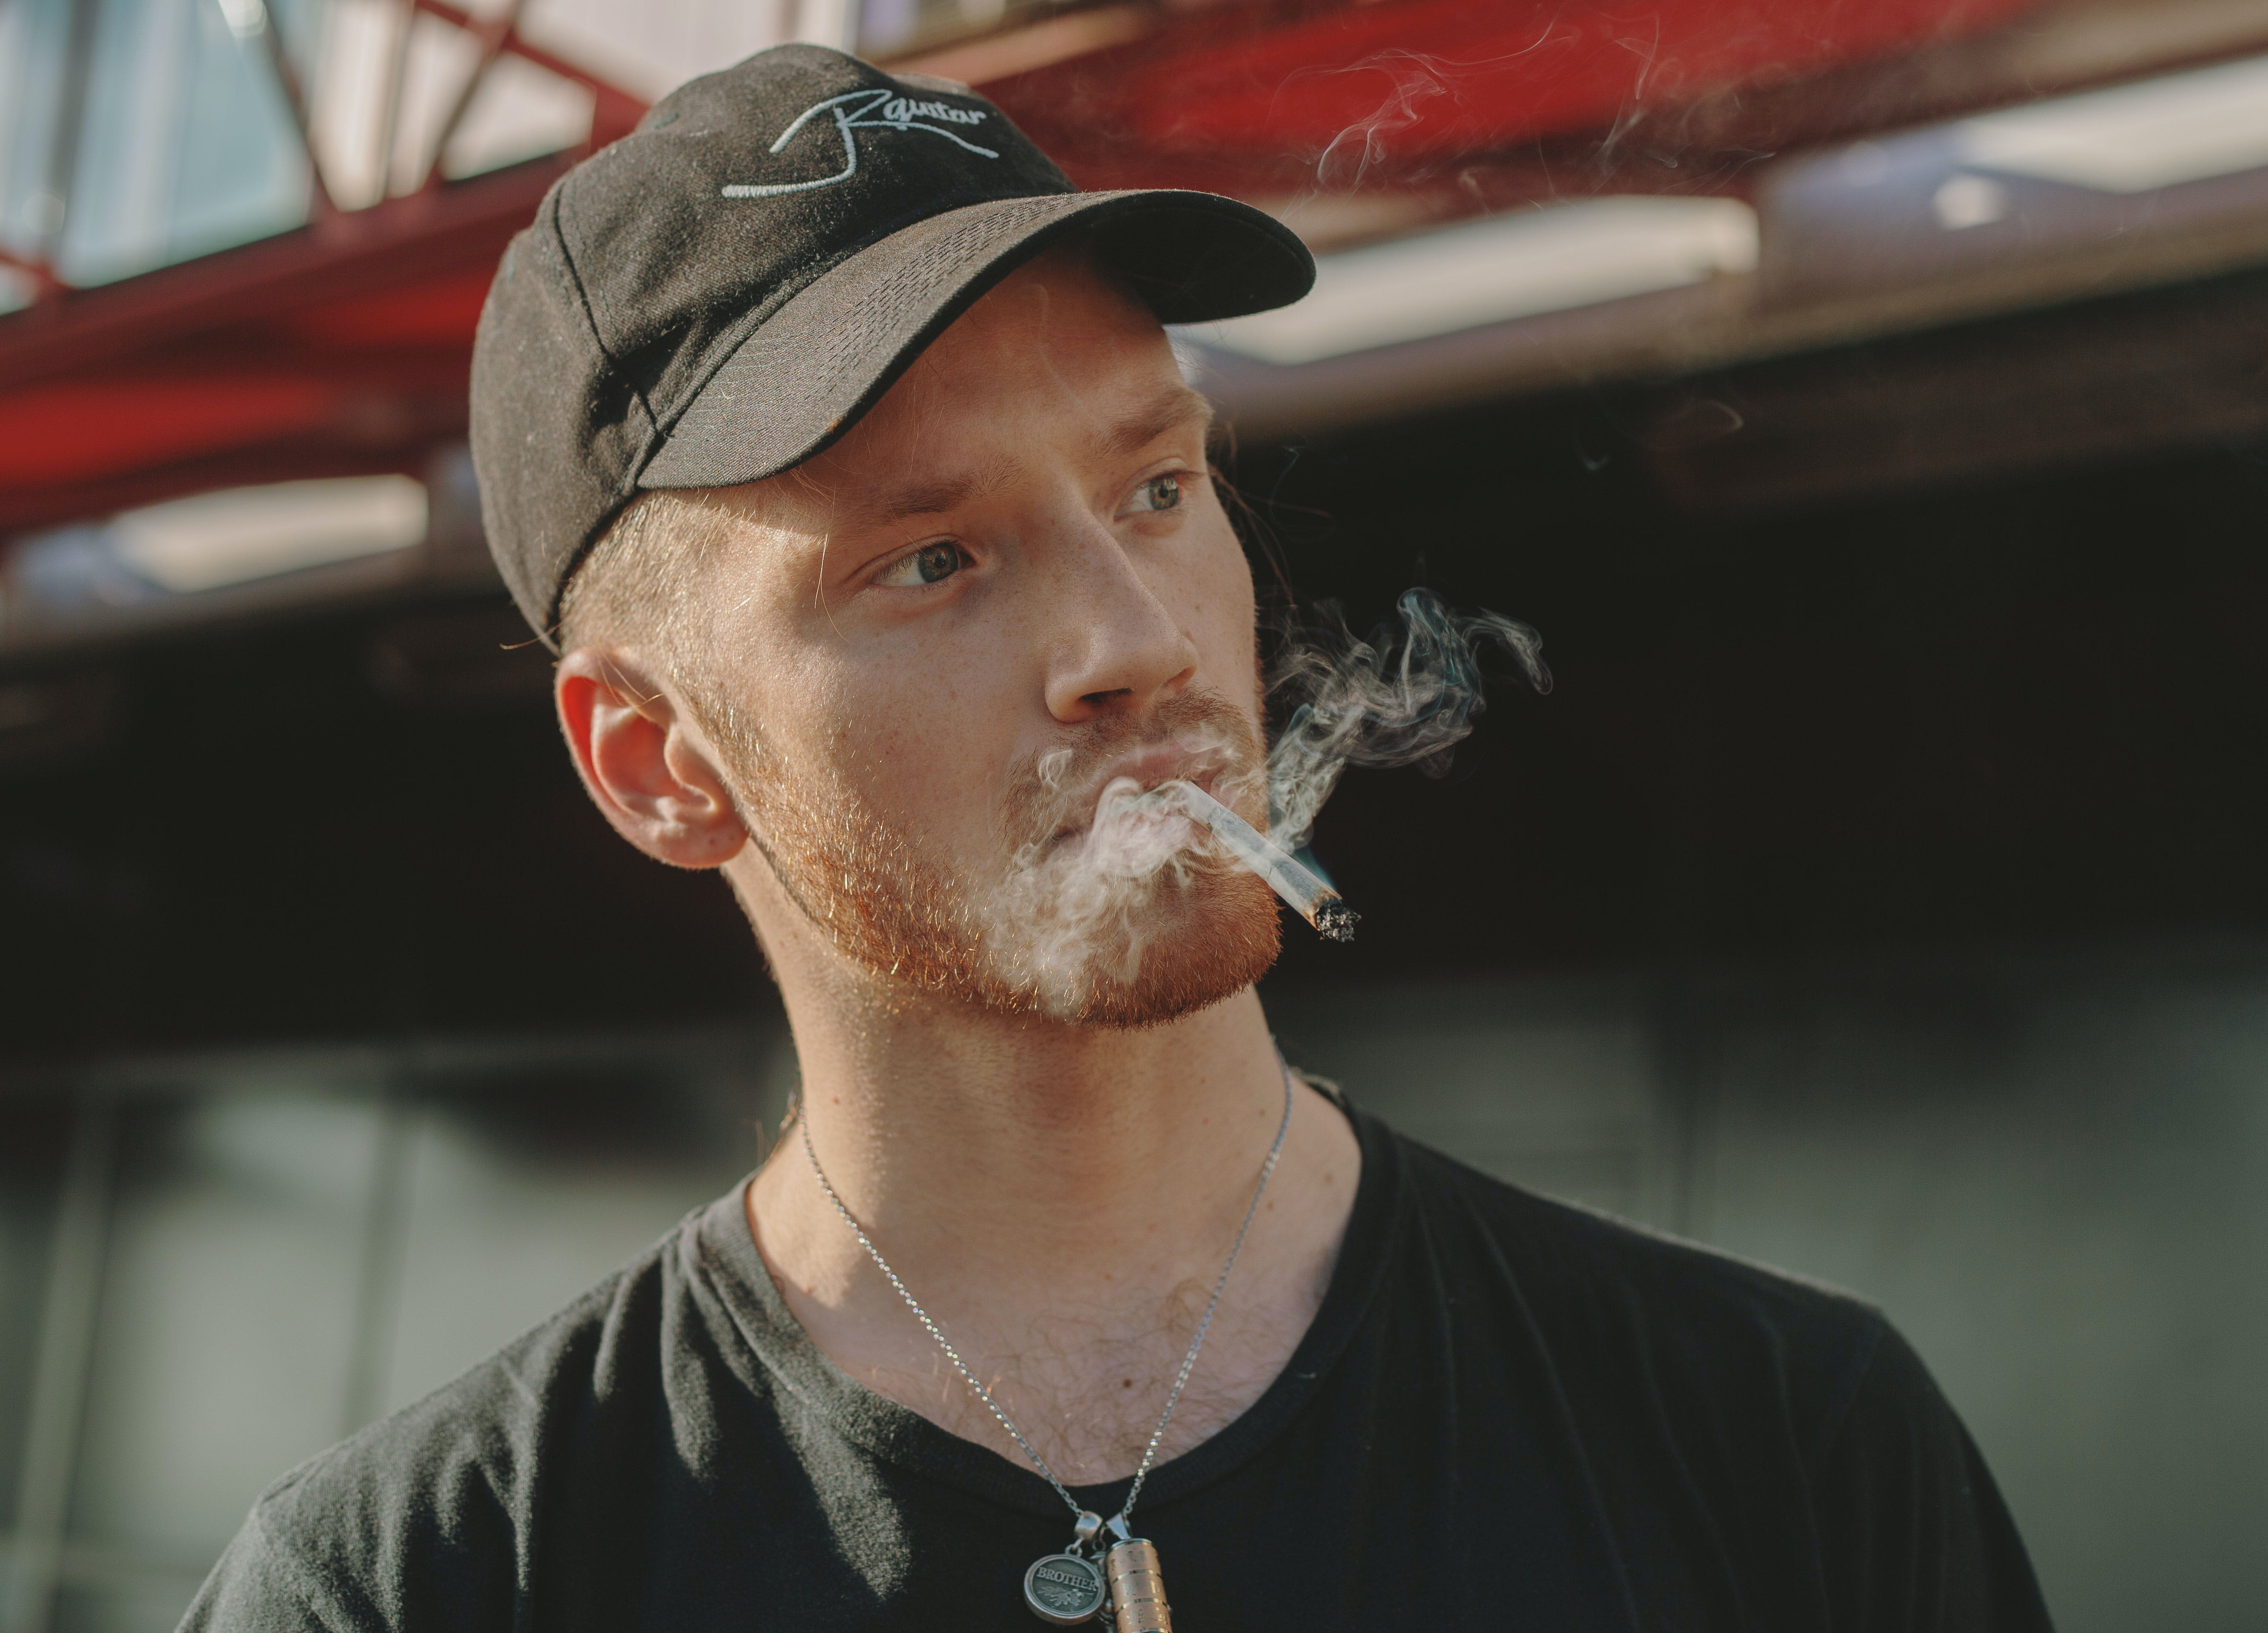 Is smoking weed bad for your lung? A man exhales smoke, while wearing a hat